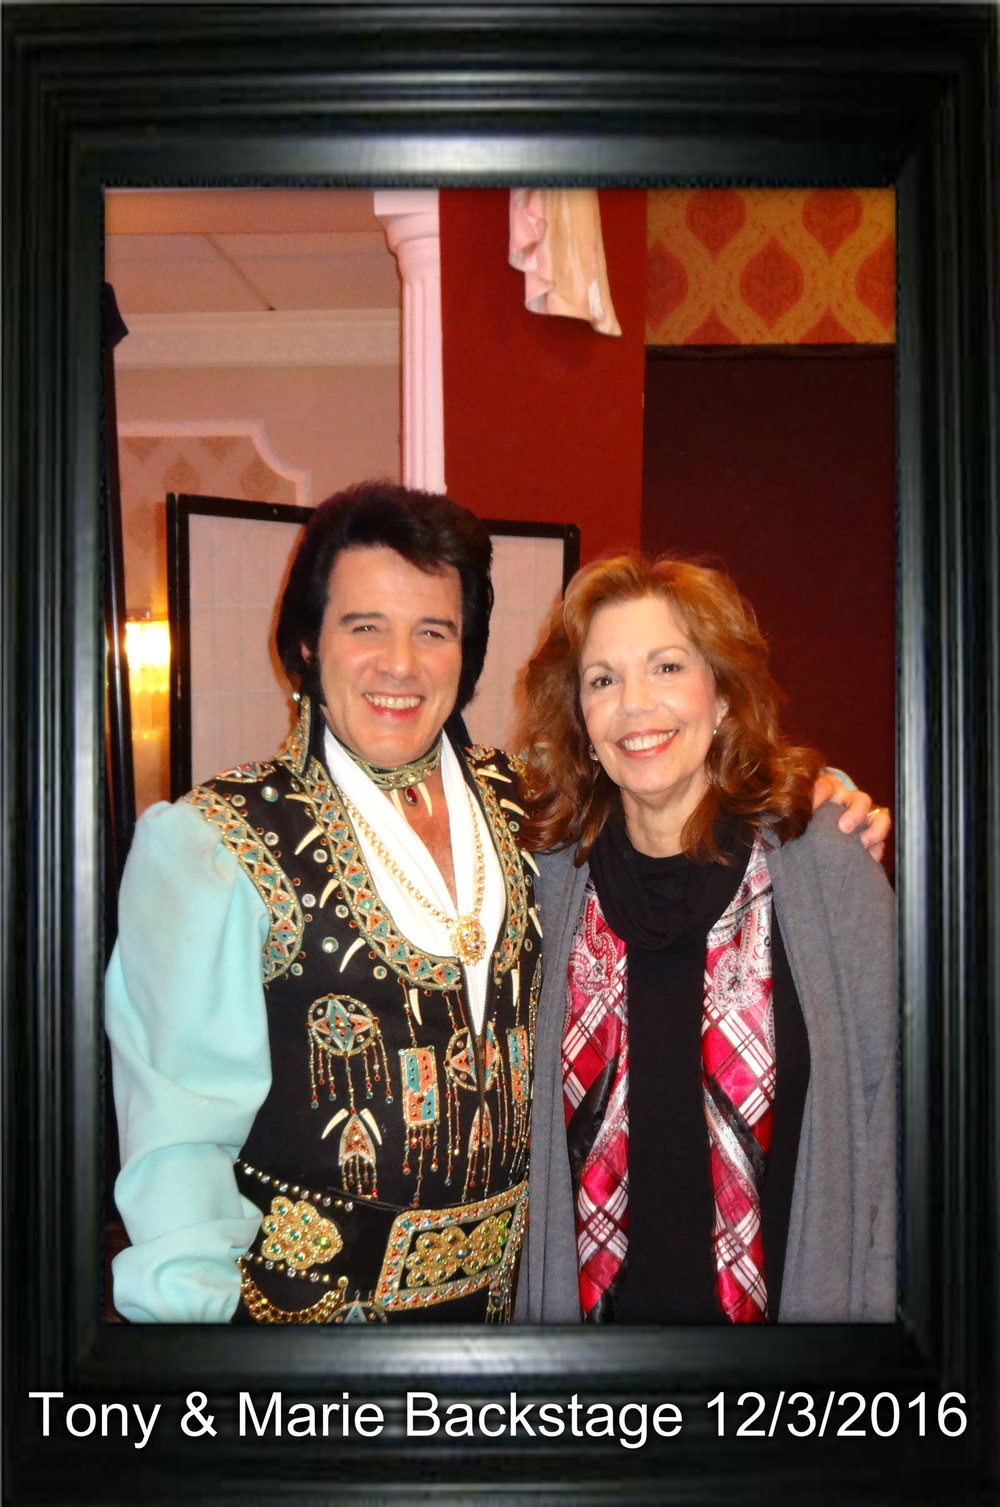 Tony & Marie Backstage before start of  December 3, 2016 Christmas Show. Marie and Tony have been together 20 years!